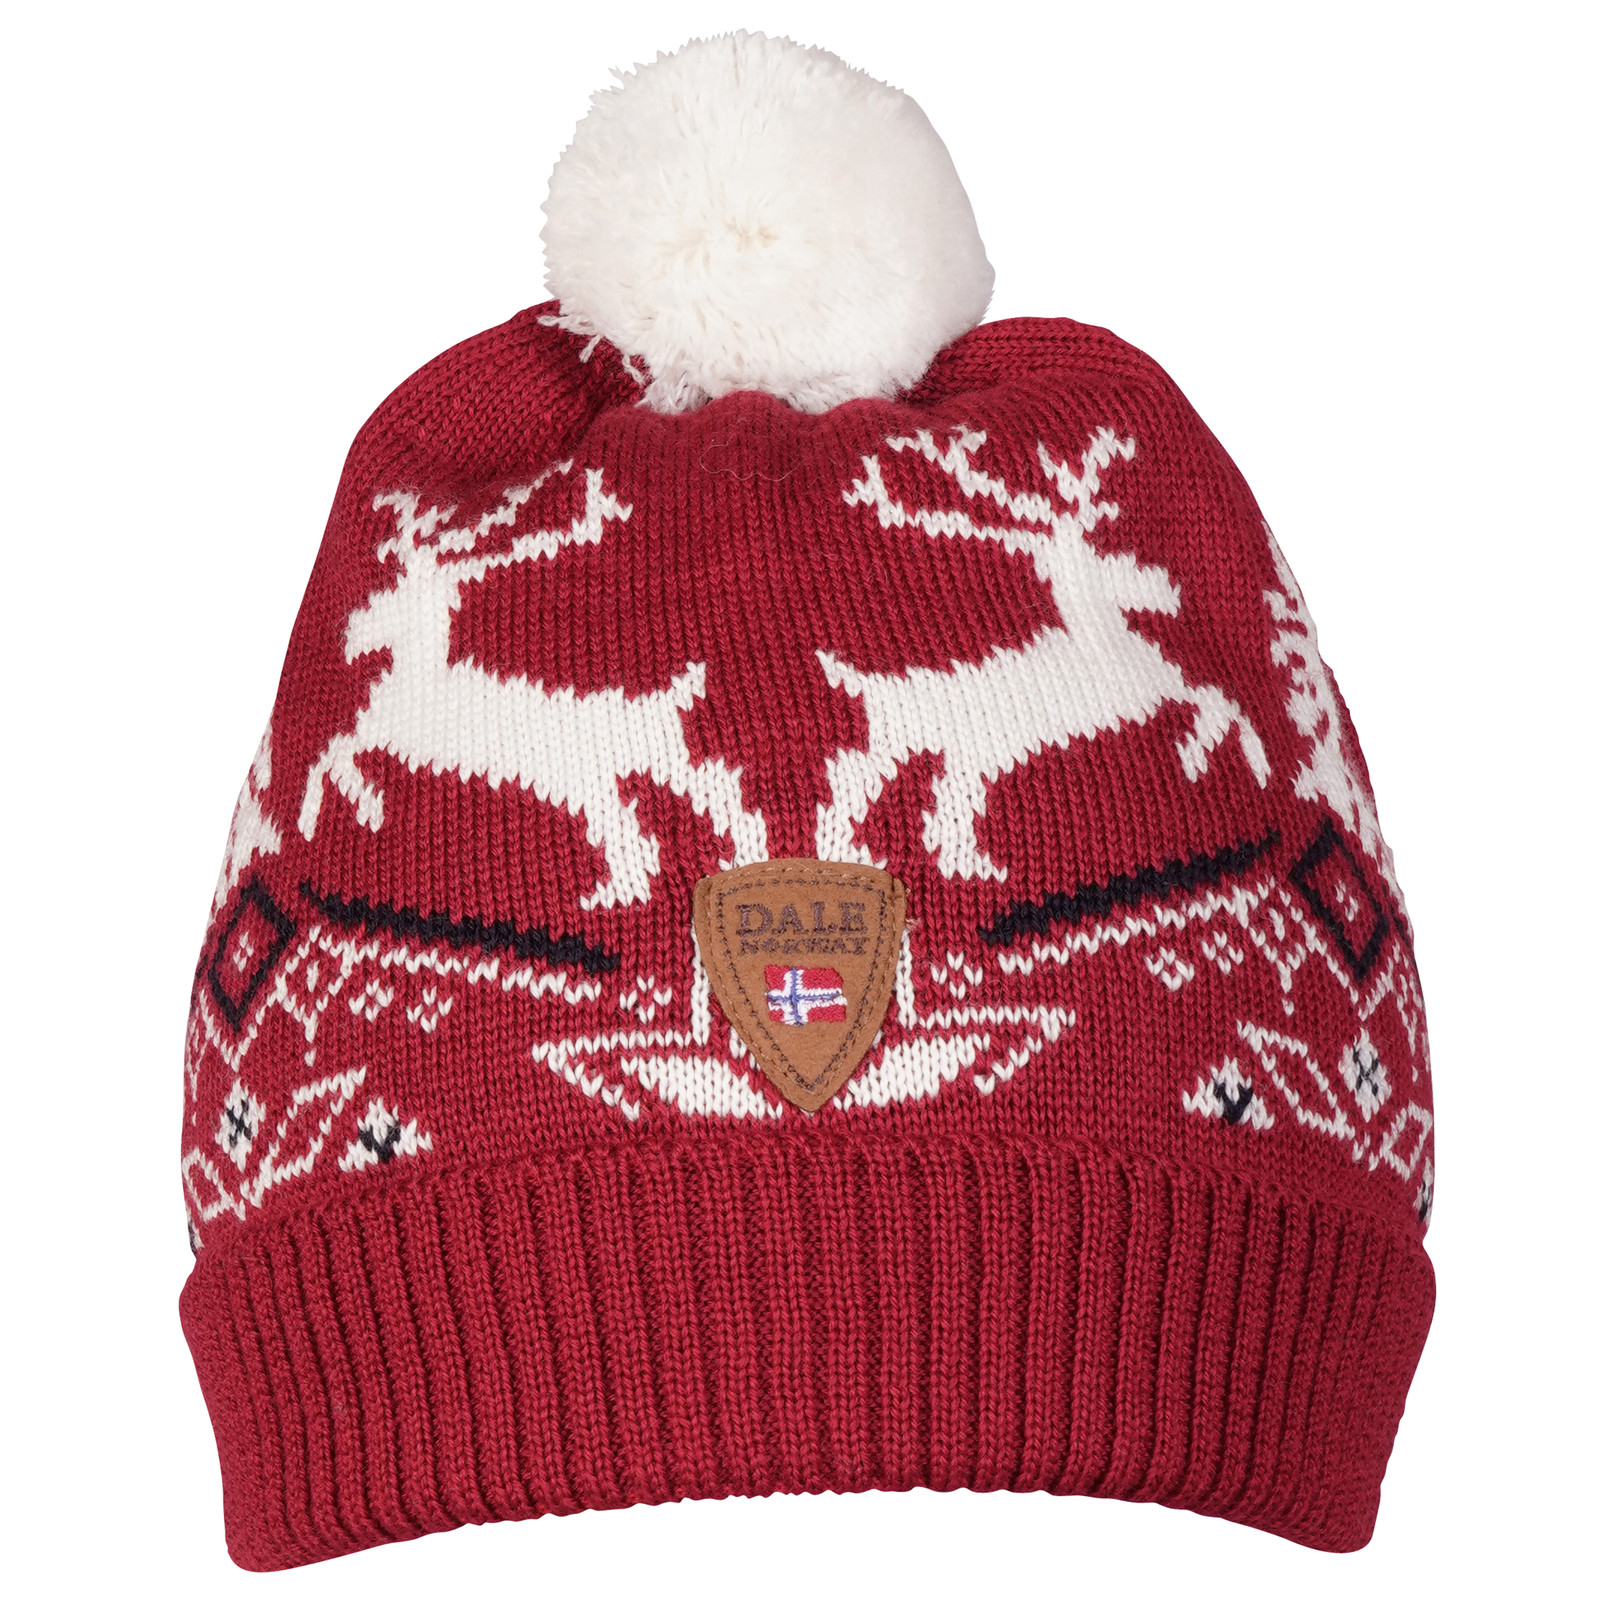 Dale of Norway Dale Christmas Kids' Hat 4-8, Raspberry/Off White/Navy 48301-B front view